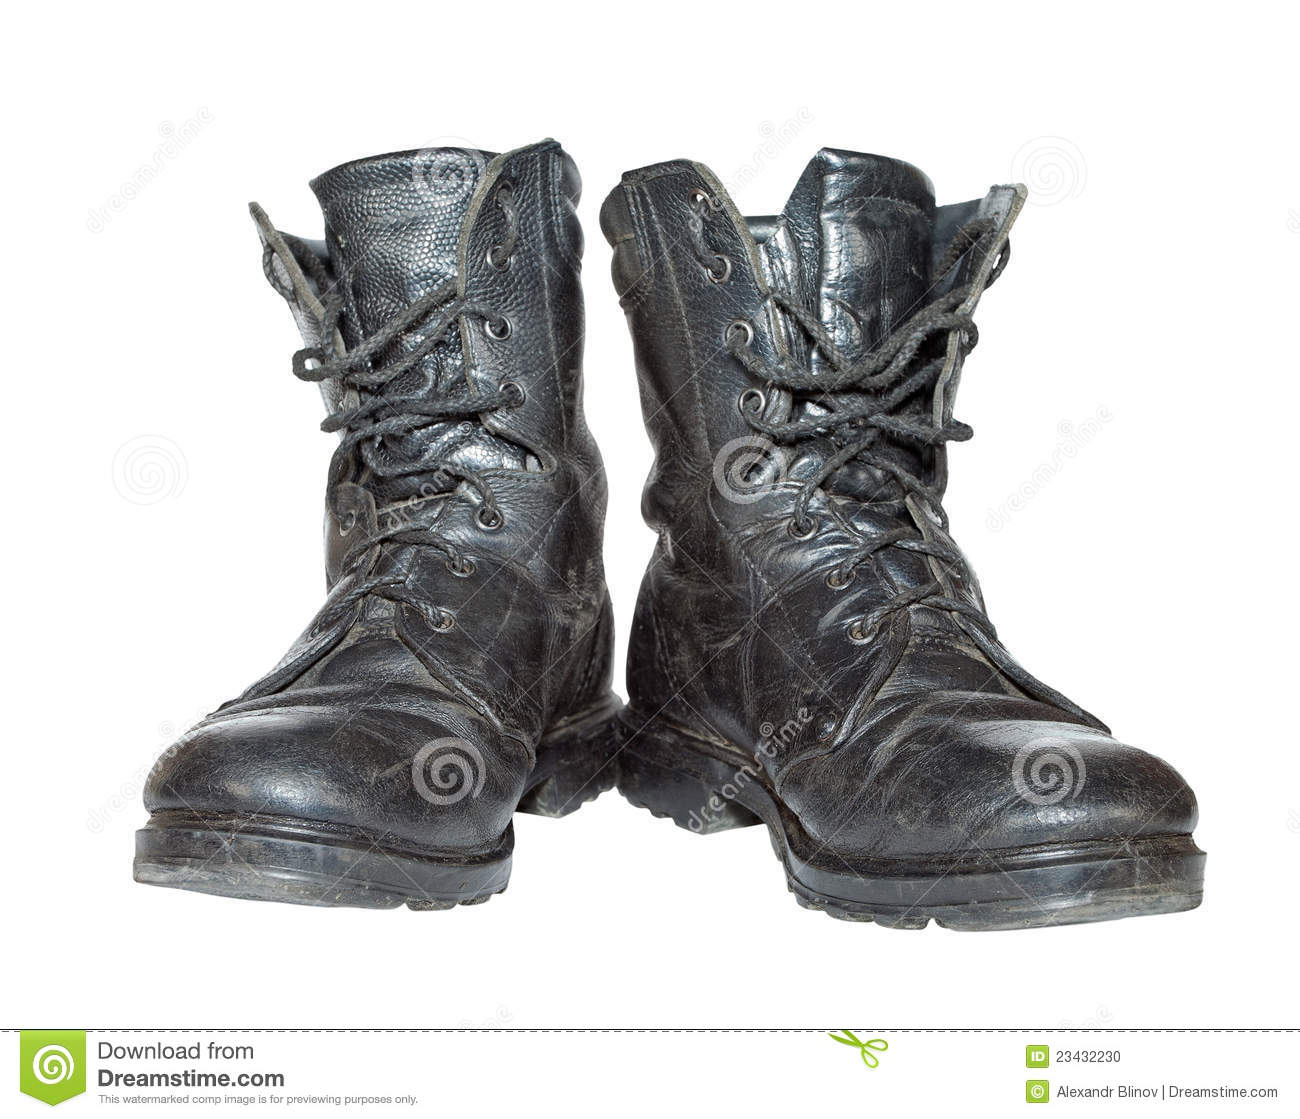 how to remove odor from work boots